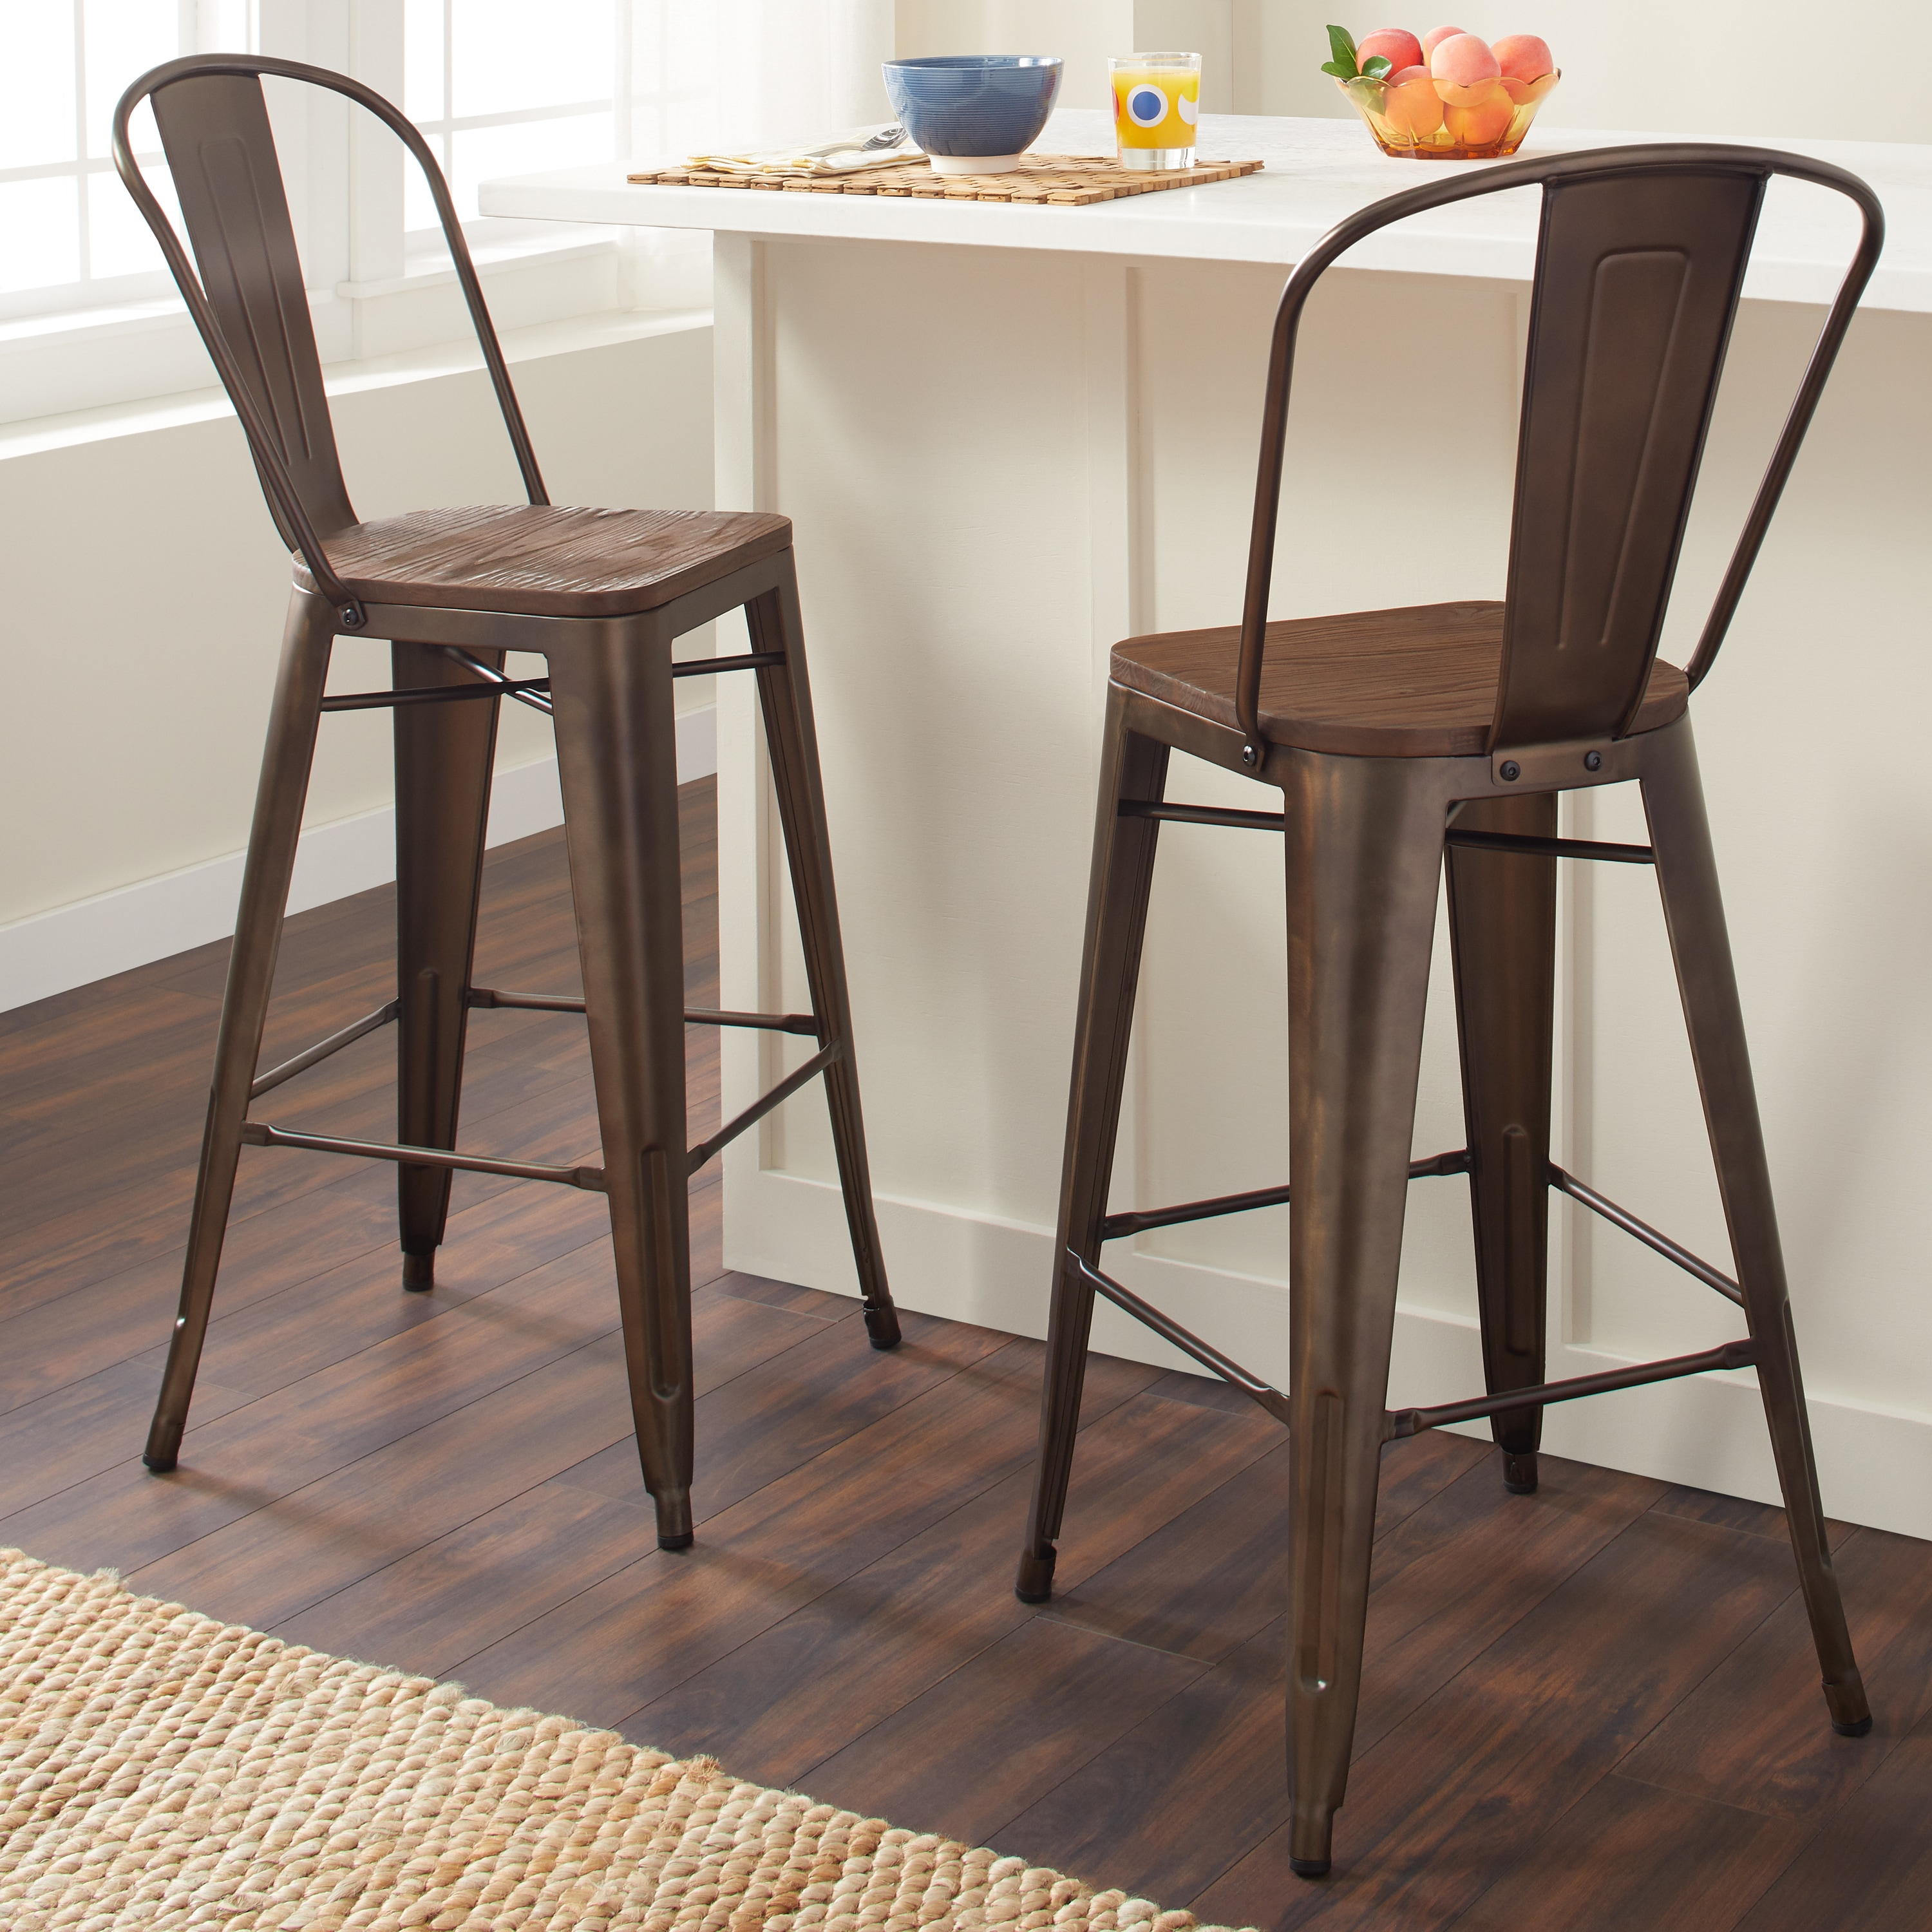 Shop tabouret 30 inch bistro wood seat vintage finish bar stools set of 2 free shipping today overstock com 9412703